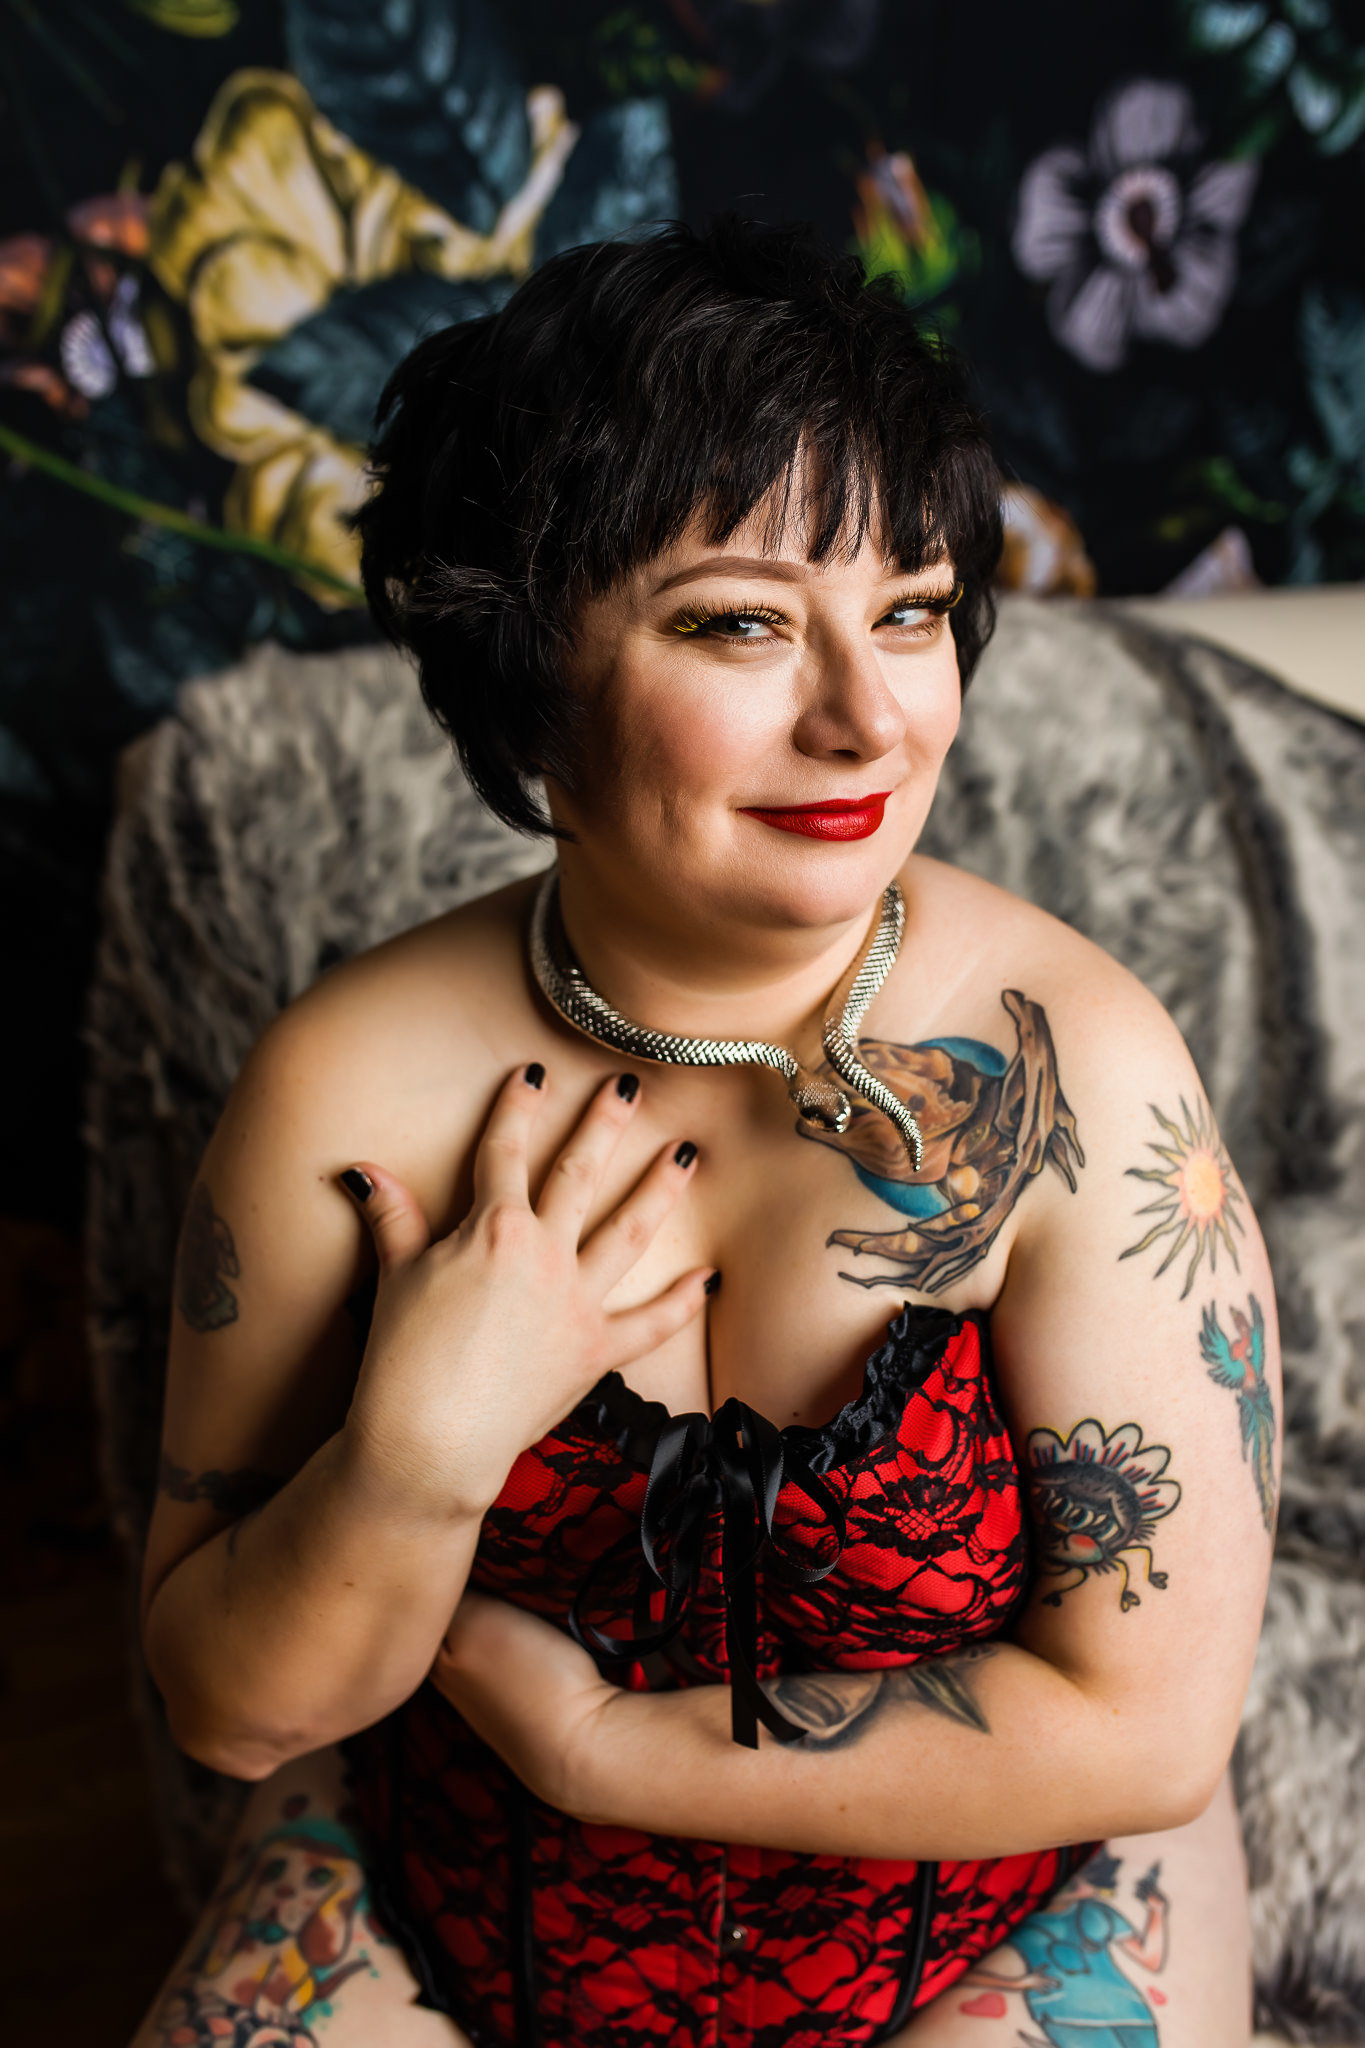 Boudoir photo of a sassy woman wearing a red corset